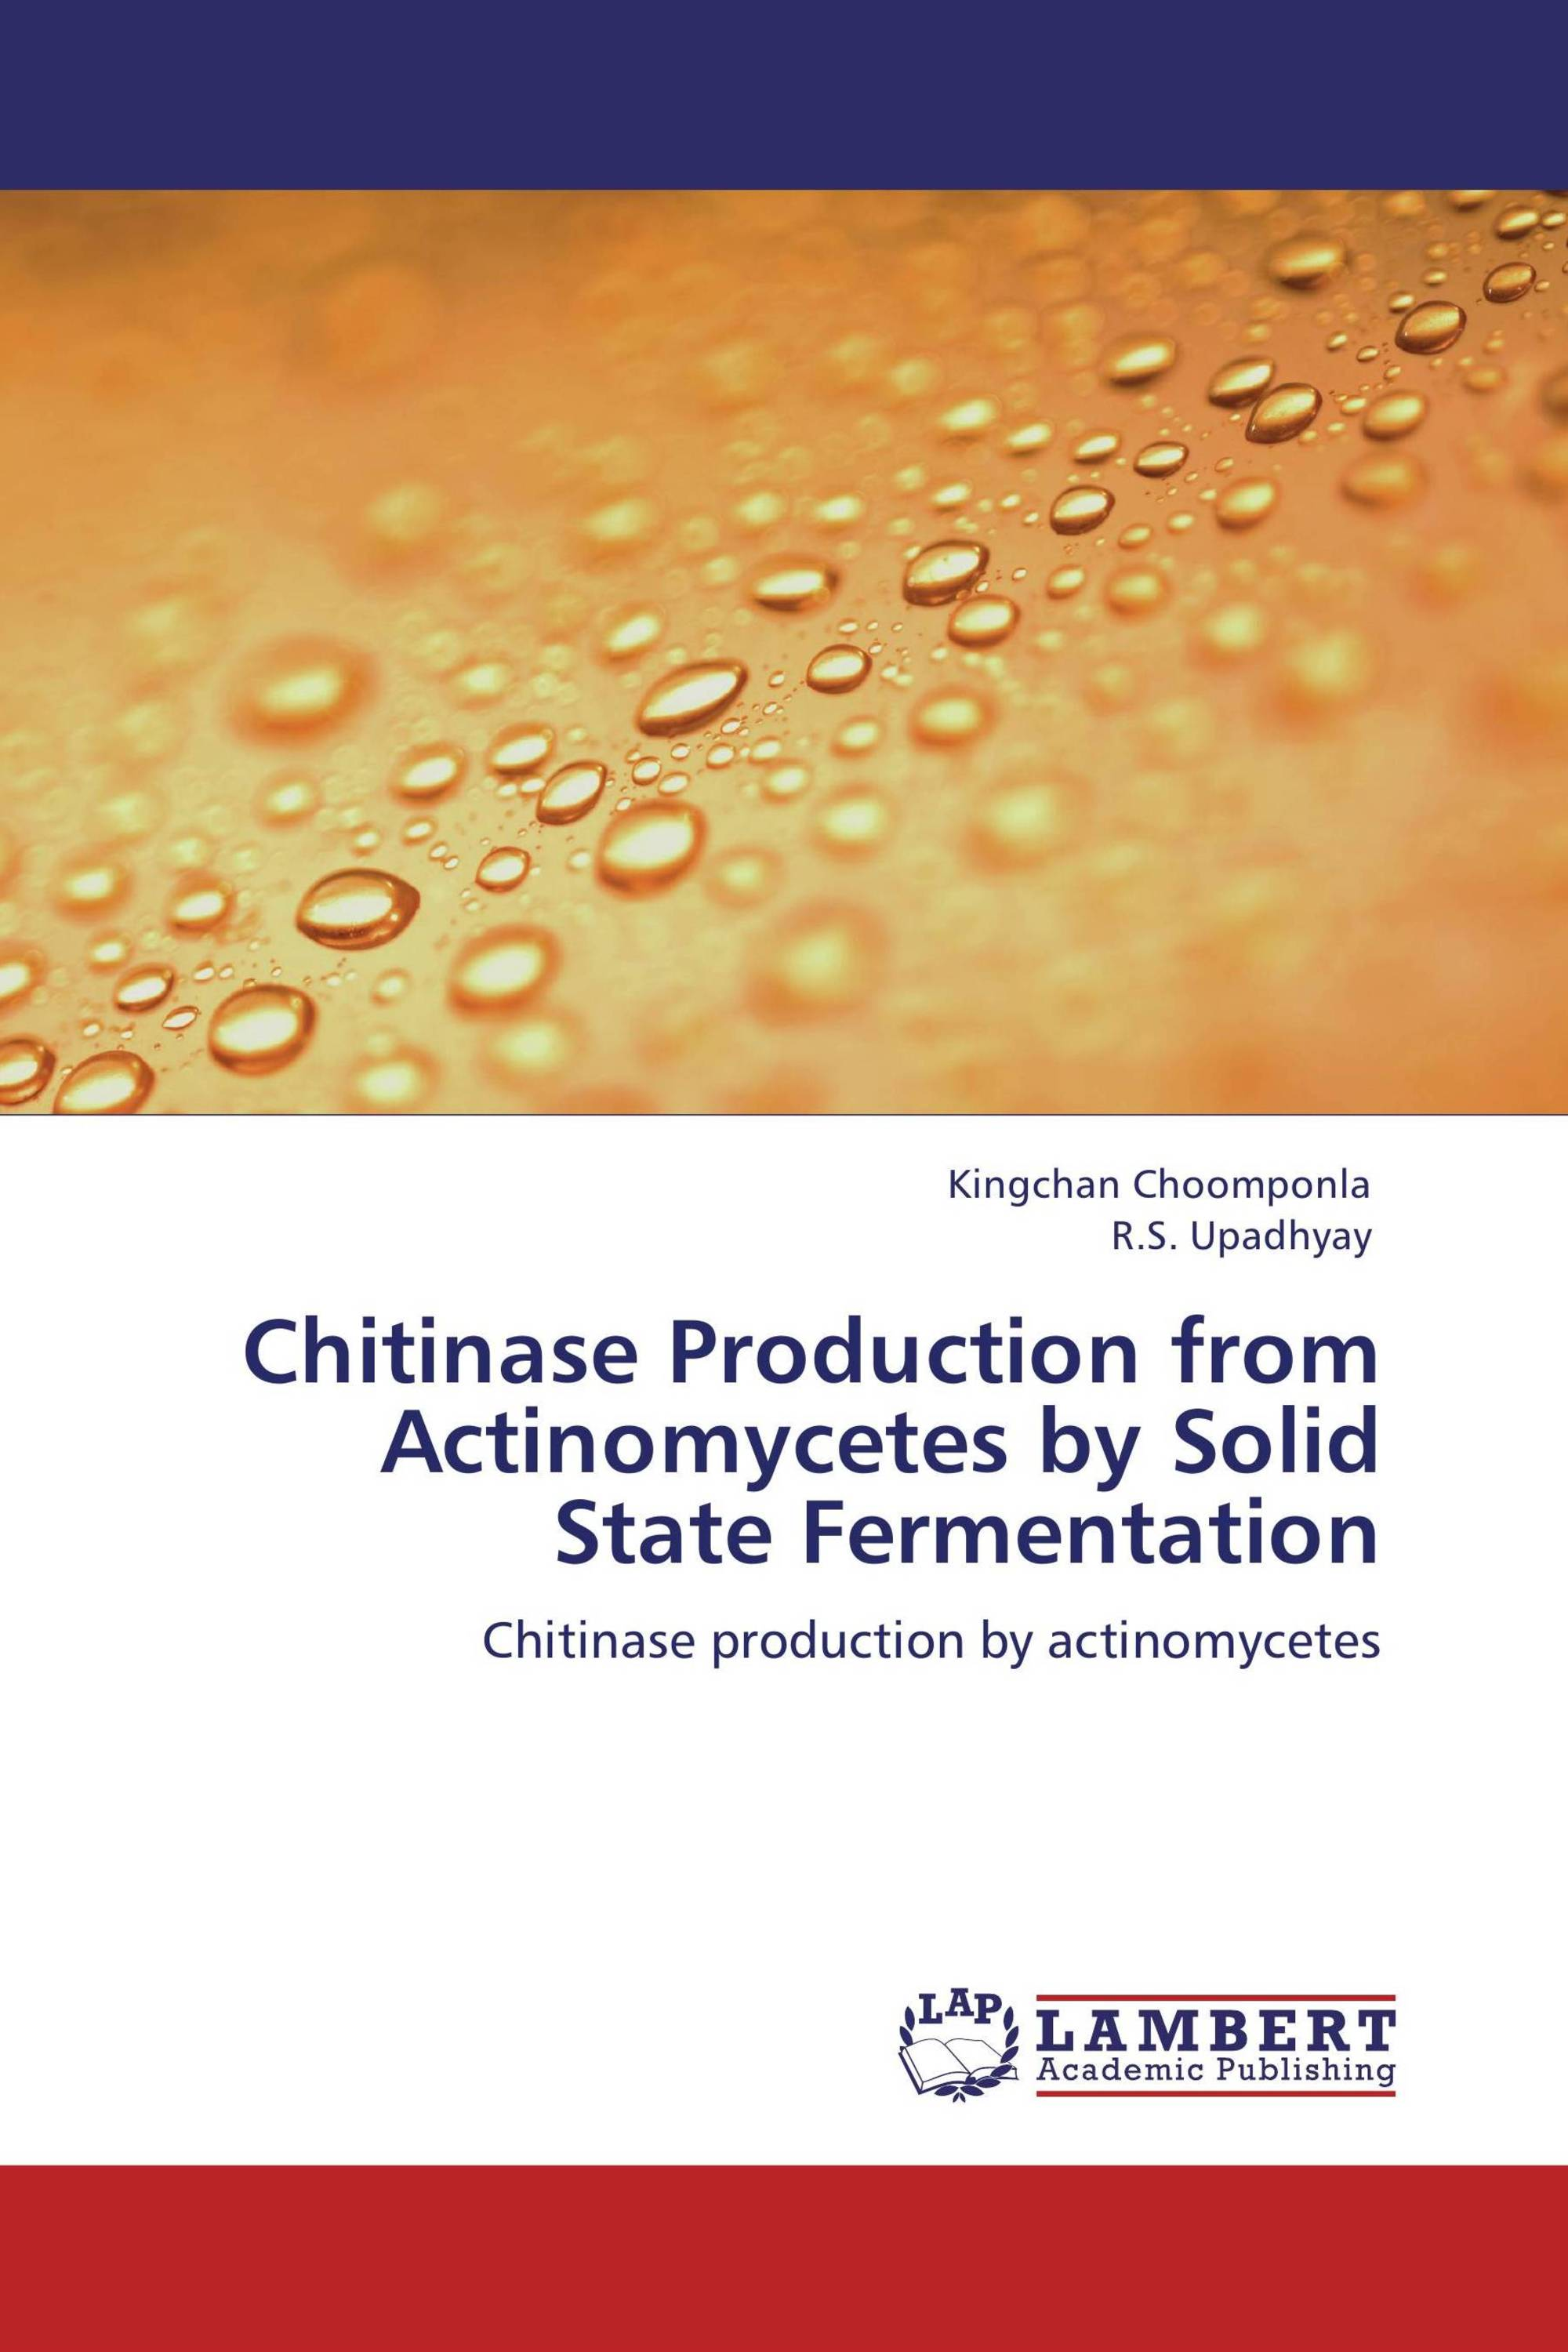 Thesis on enzyme production